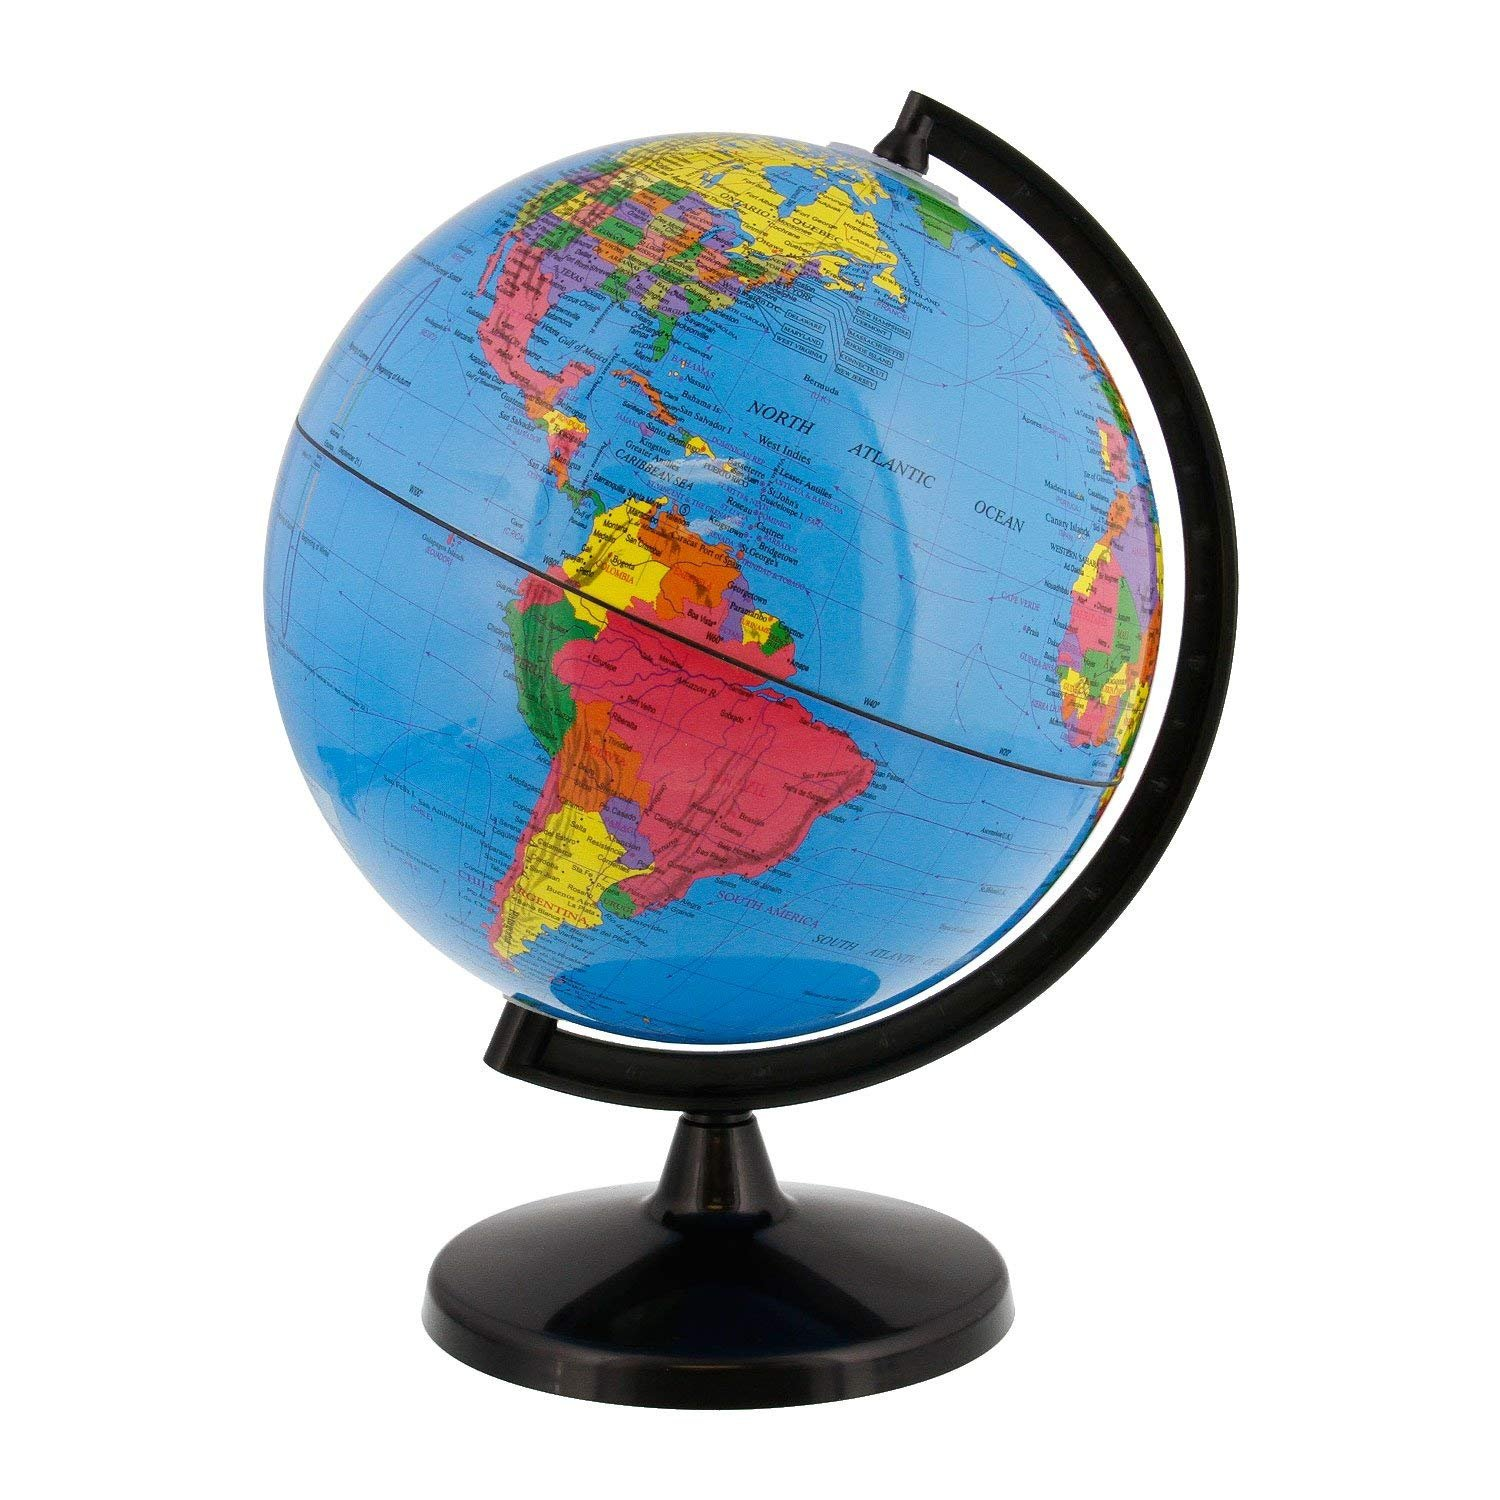 World Globe Great for Kids and Adults with Stand Desk 8 inch Globe 12 inch Tall Educational Deluxe Blue Ocean Black Base Full Earth Geography